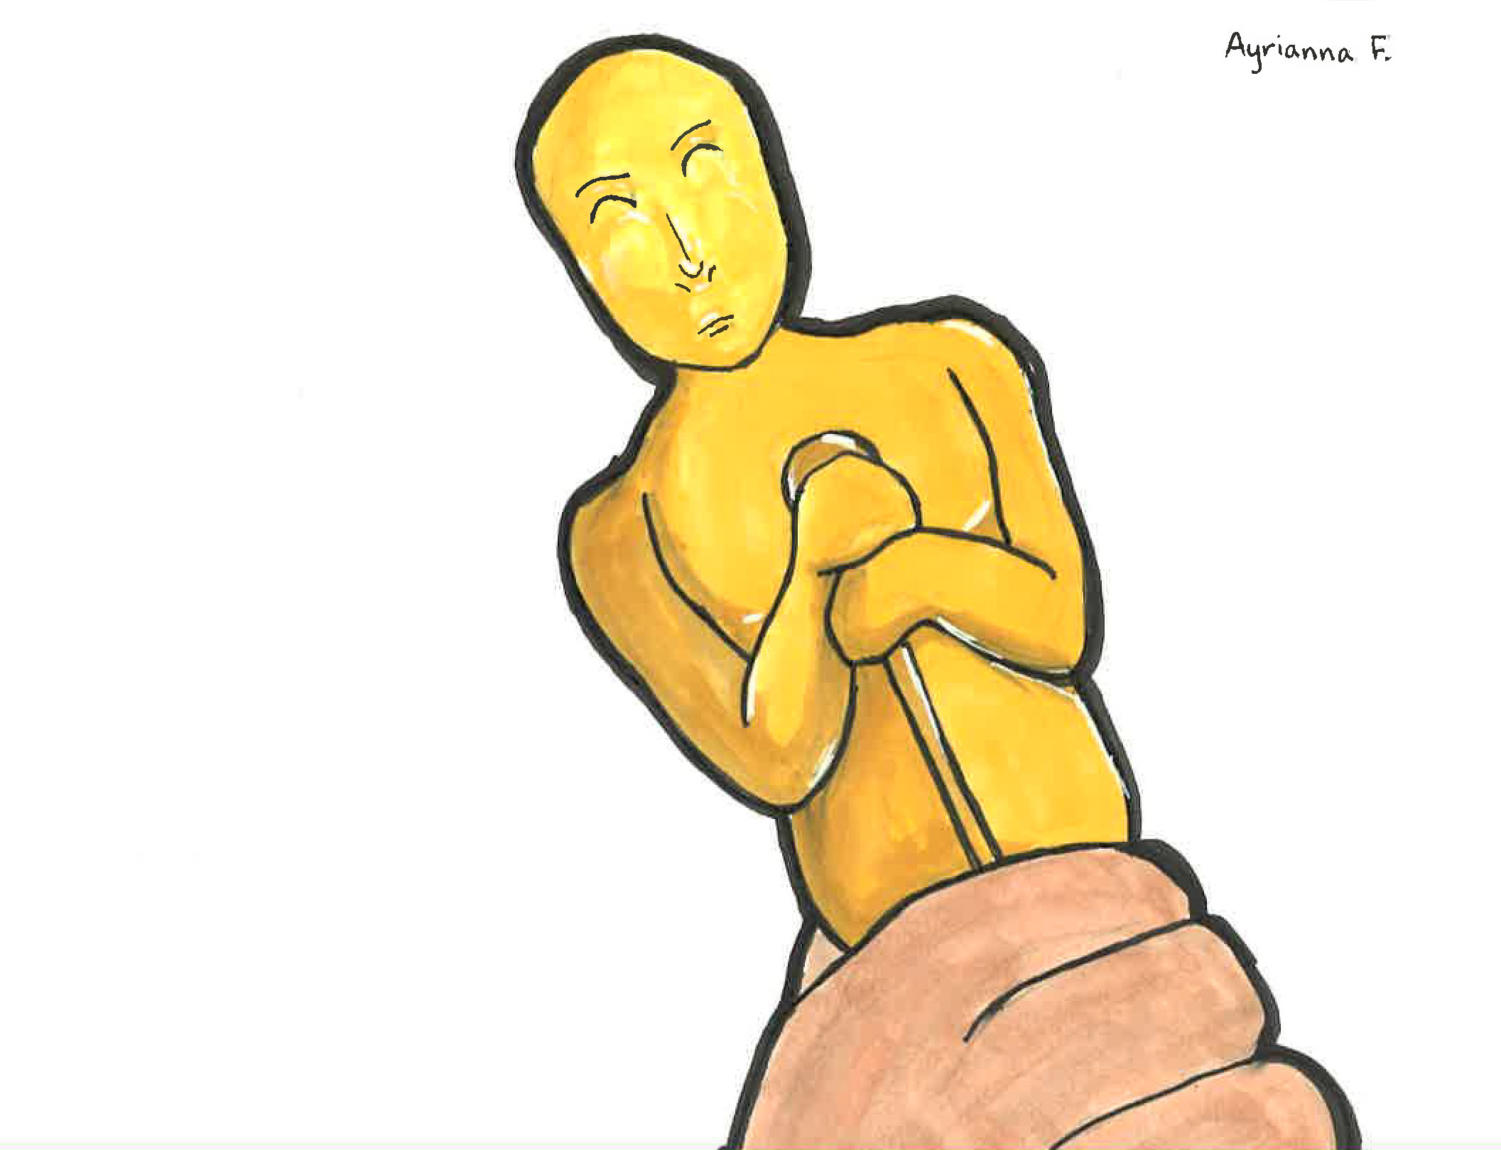 The 91st Academy Awards are set to air on Sunday, Feb. 24 at 7 p.m. on ABC.